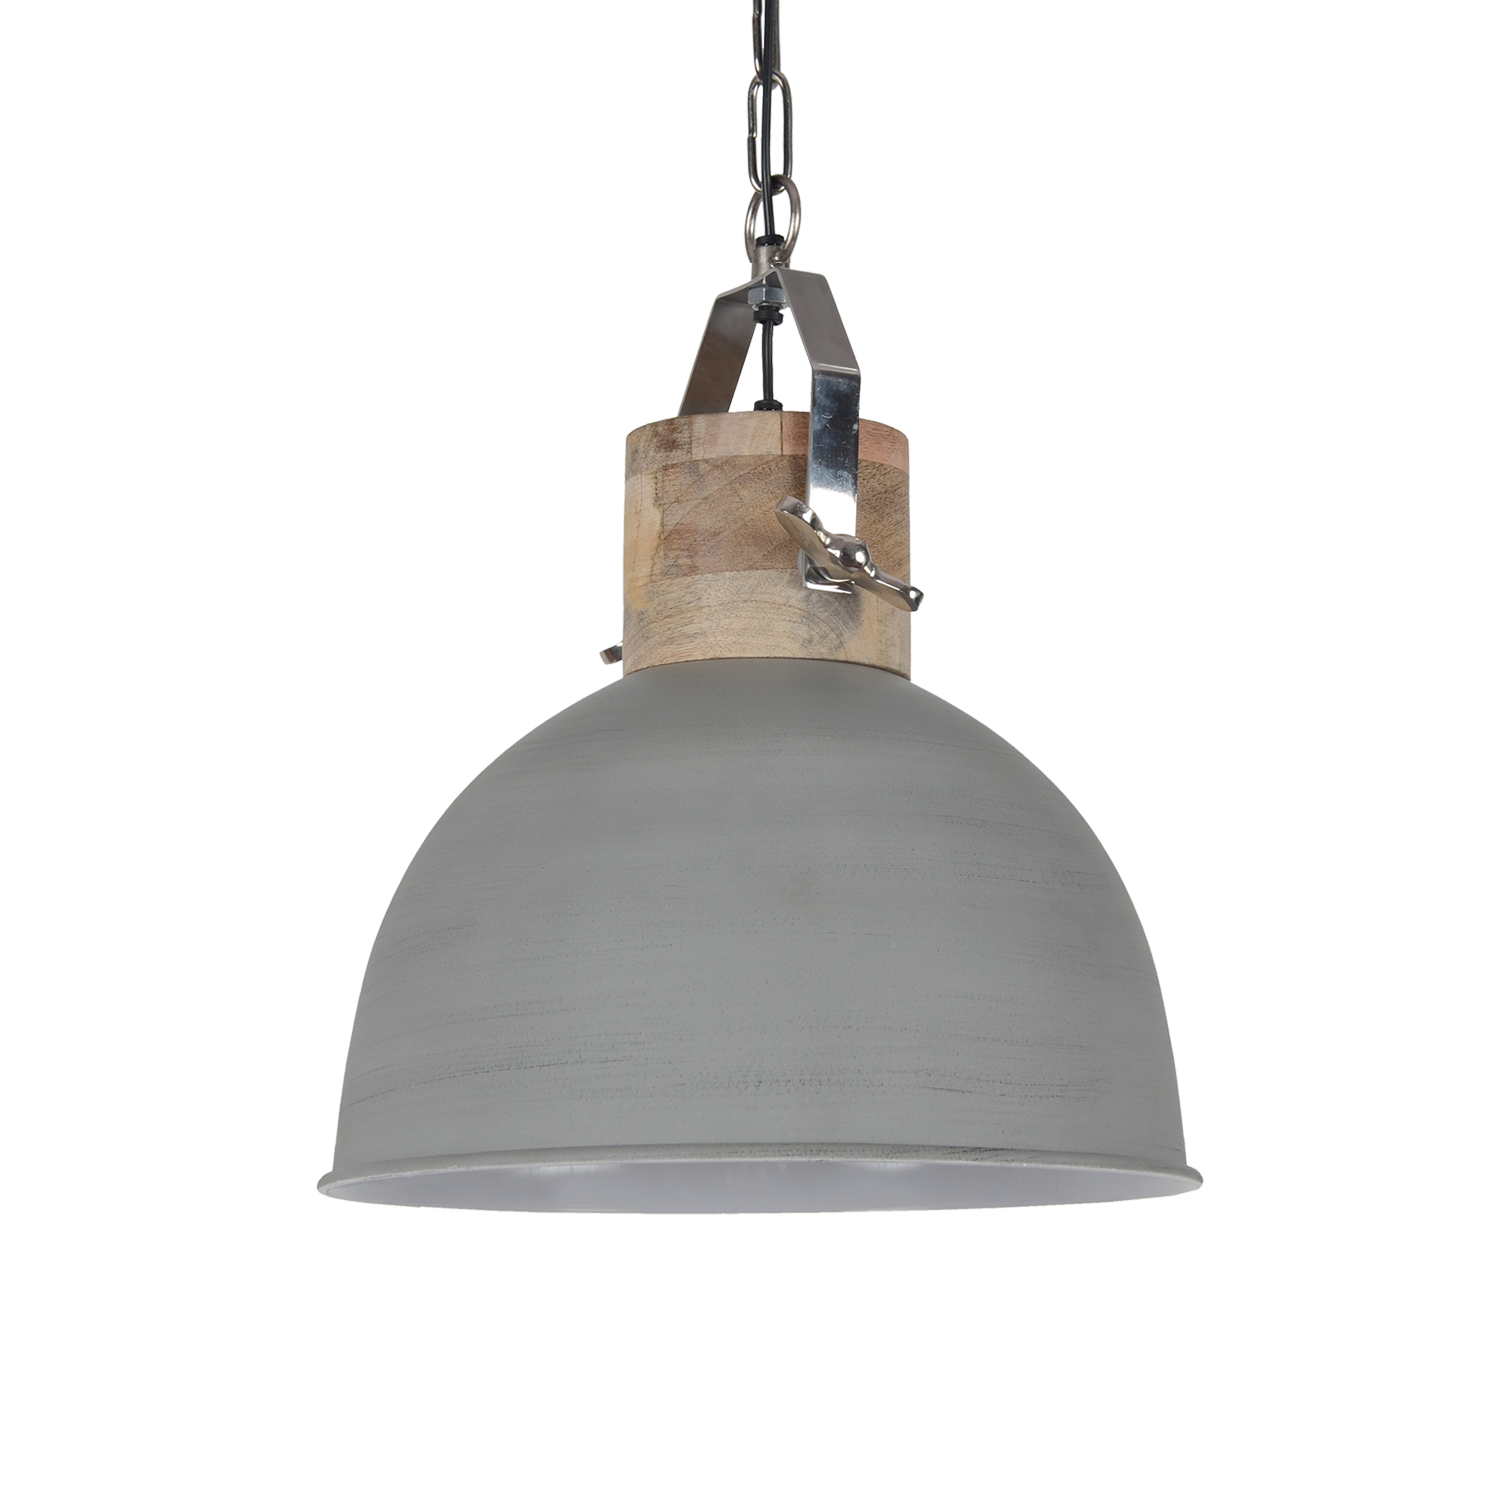 Hanglamp fabriano 40 cm mat licht grijs 6107 pakhuis3 for Collectione lampen